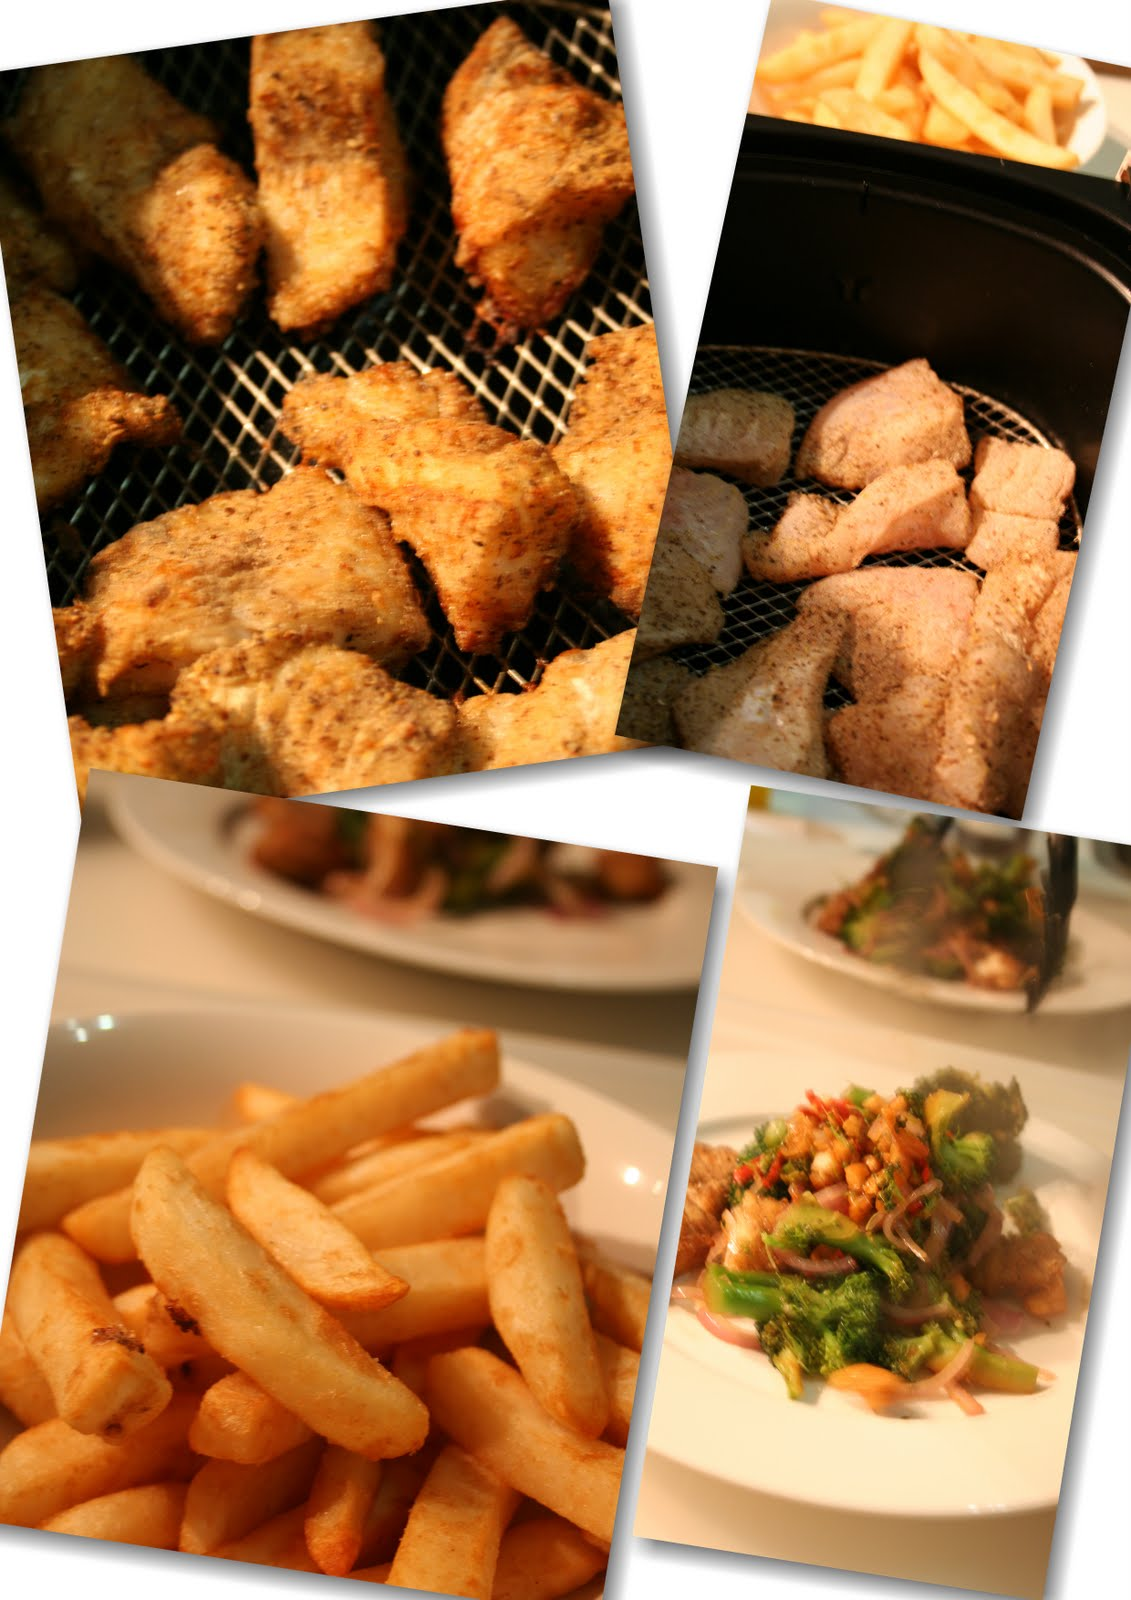 What Variety Of Foods Can You Make With An Air Fryer?